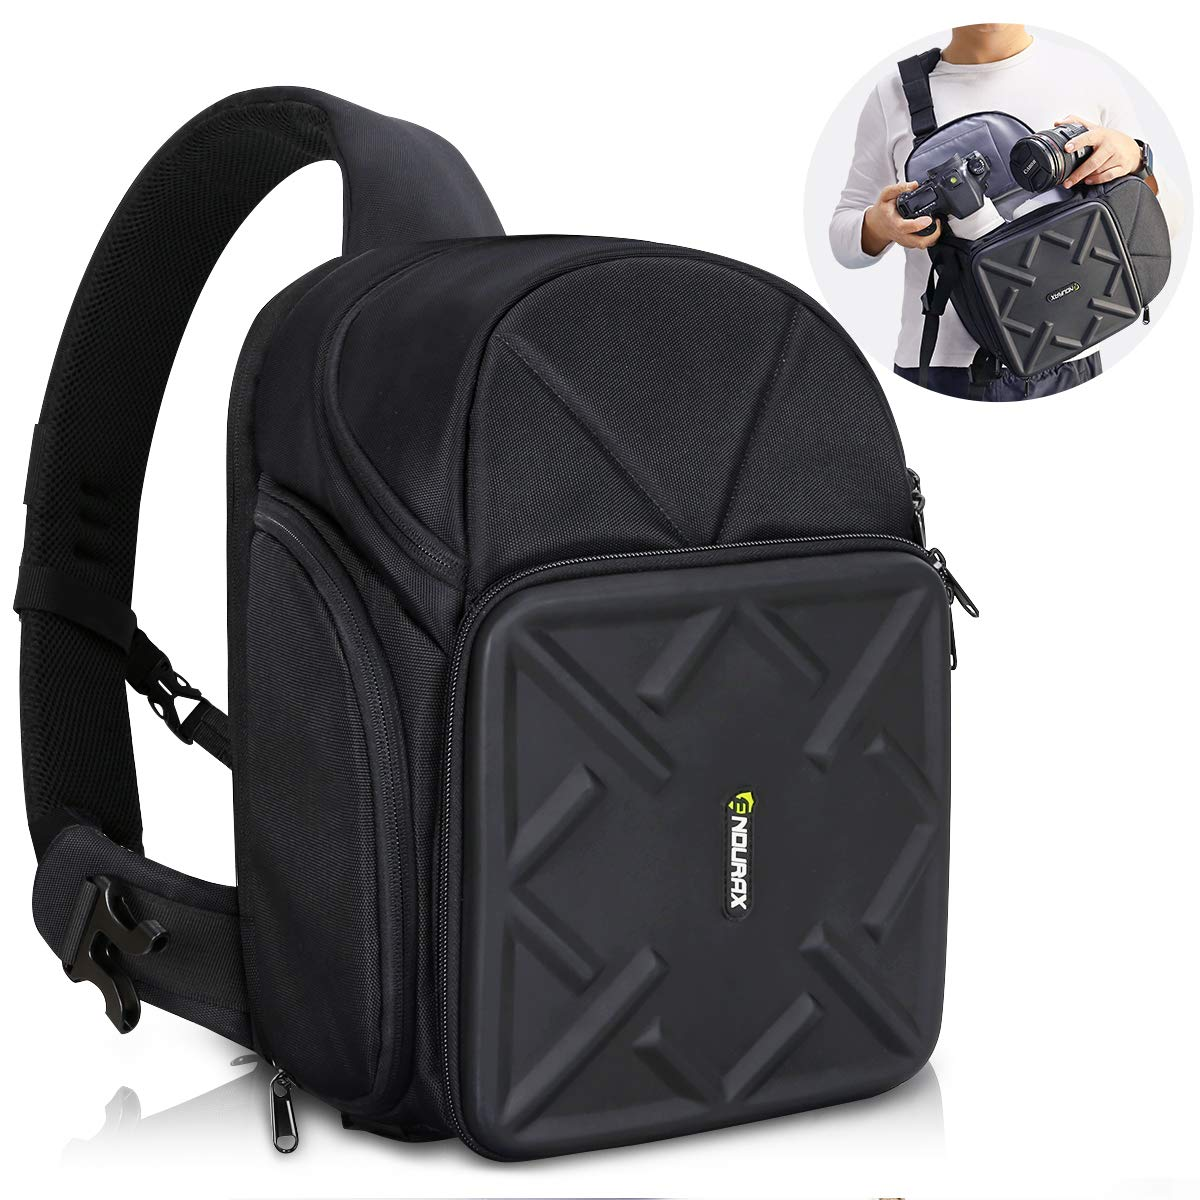 Amazon.com   Endurax Sling Camera Bag Backpack for DSLR Camera with  Customizable Dividers for Long Lens and Waterproof Rain Cover for Canon  Nikon Sony ...